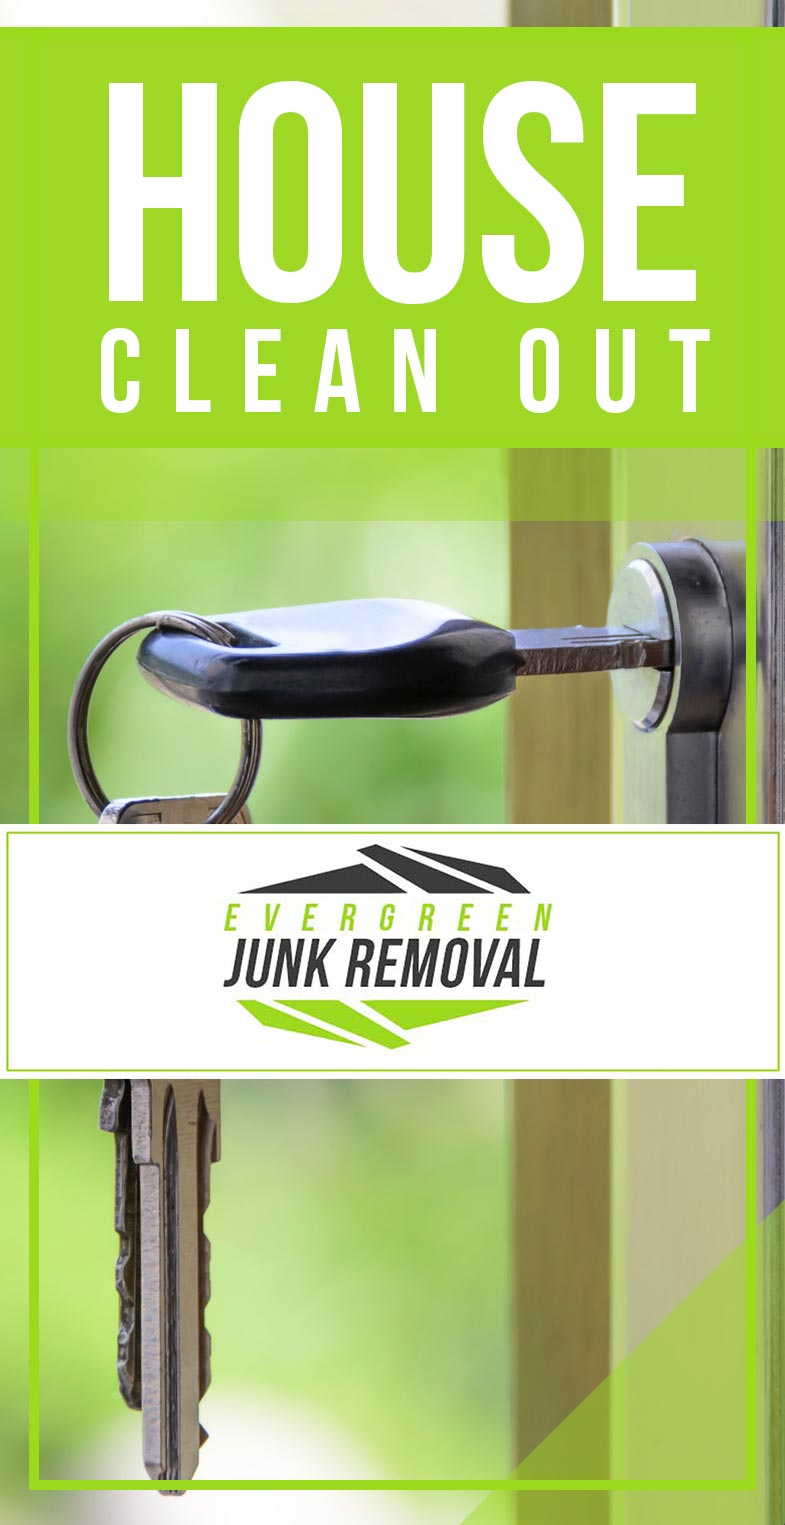 Junk Removal Tamarac House Clean Out